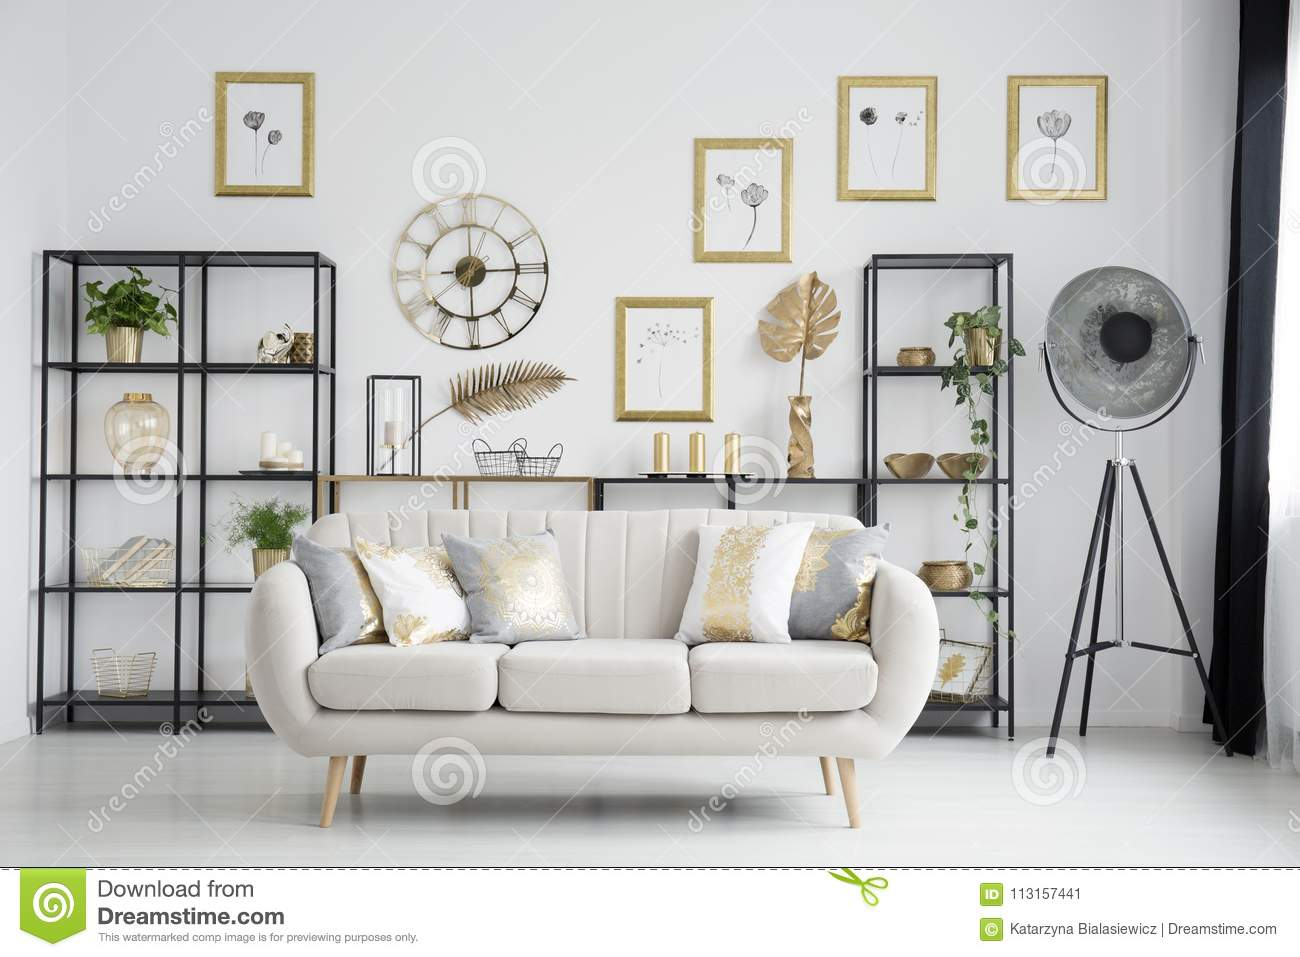 Sofa in gold living room stock image. Image of gallery - 113157441